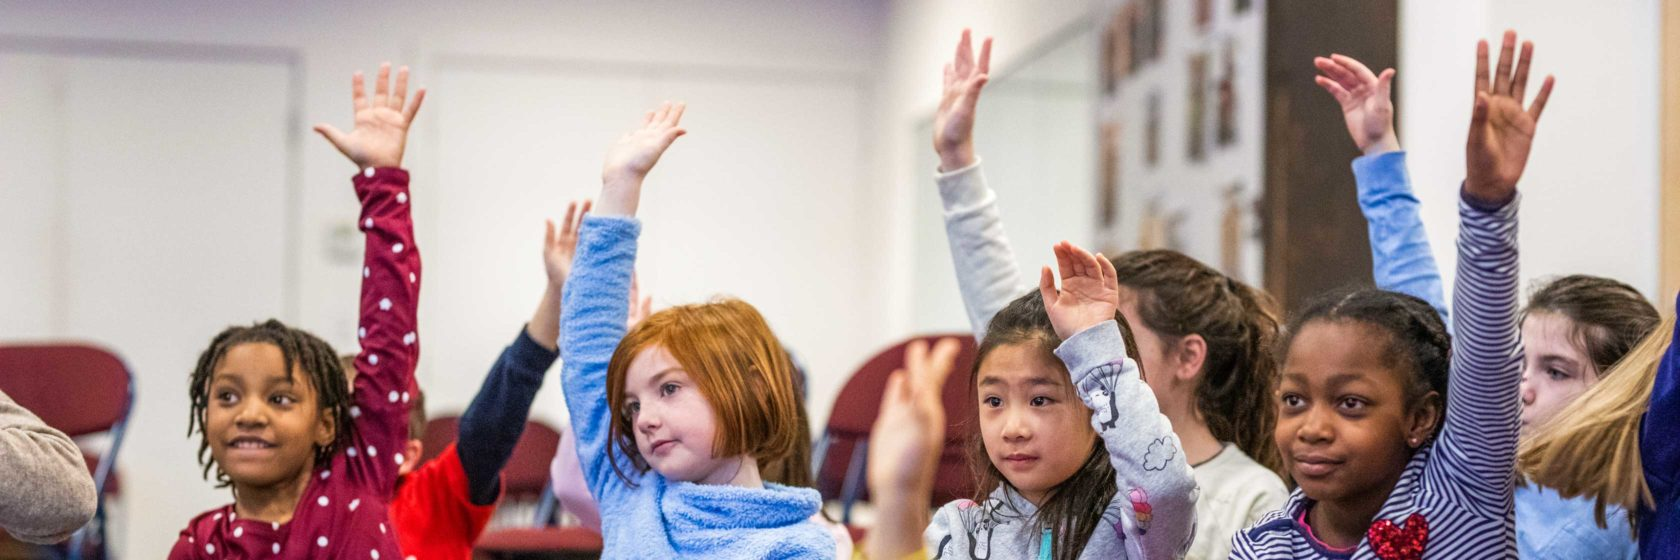 Children raising their hands to ask questions while in class.